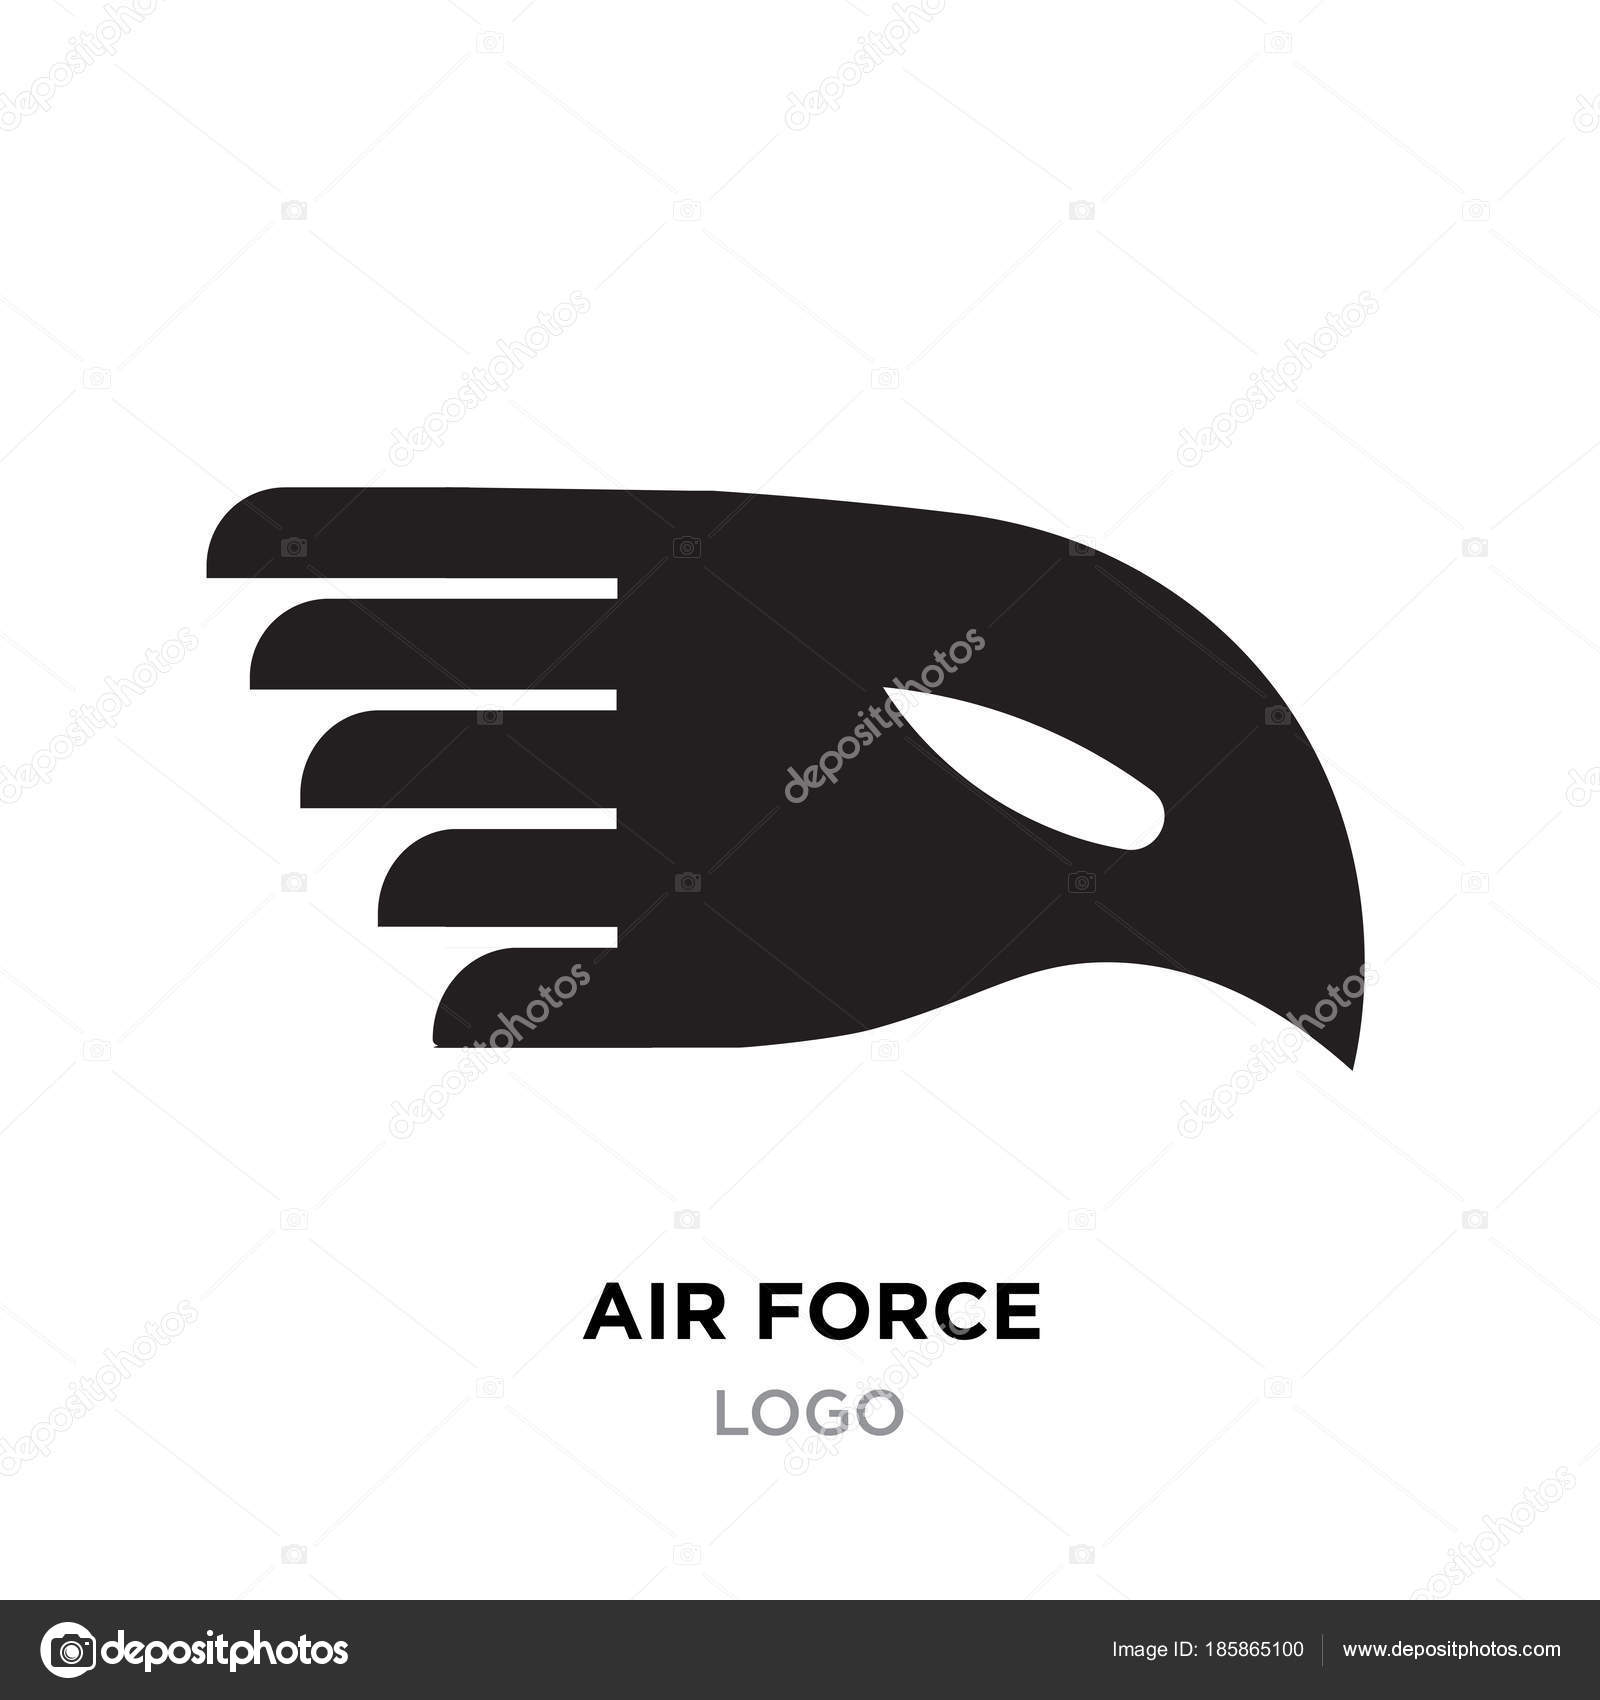 Air force logo images black eagle vector icon design isolated air force logo images black eagle vector icon design isolated stock vector voltagebd Images